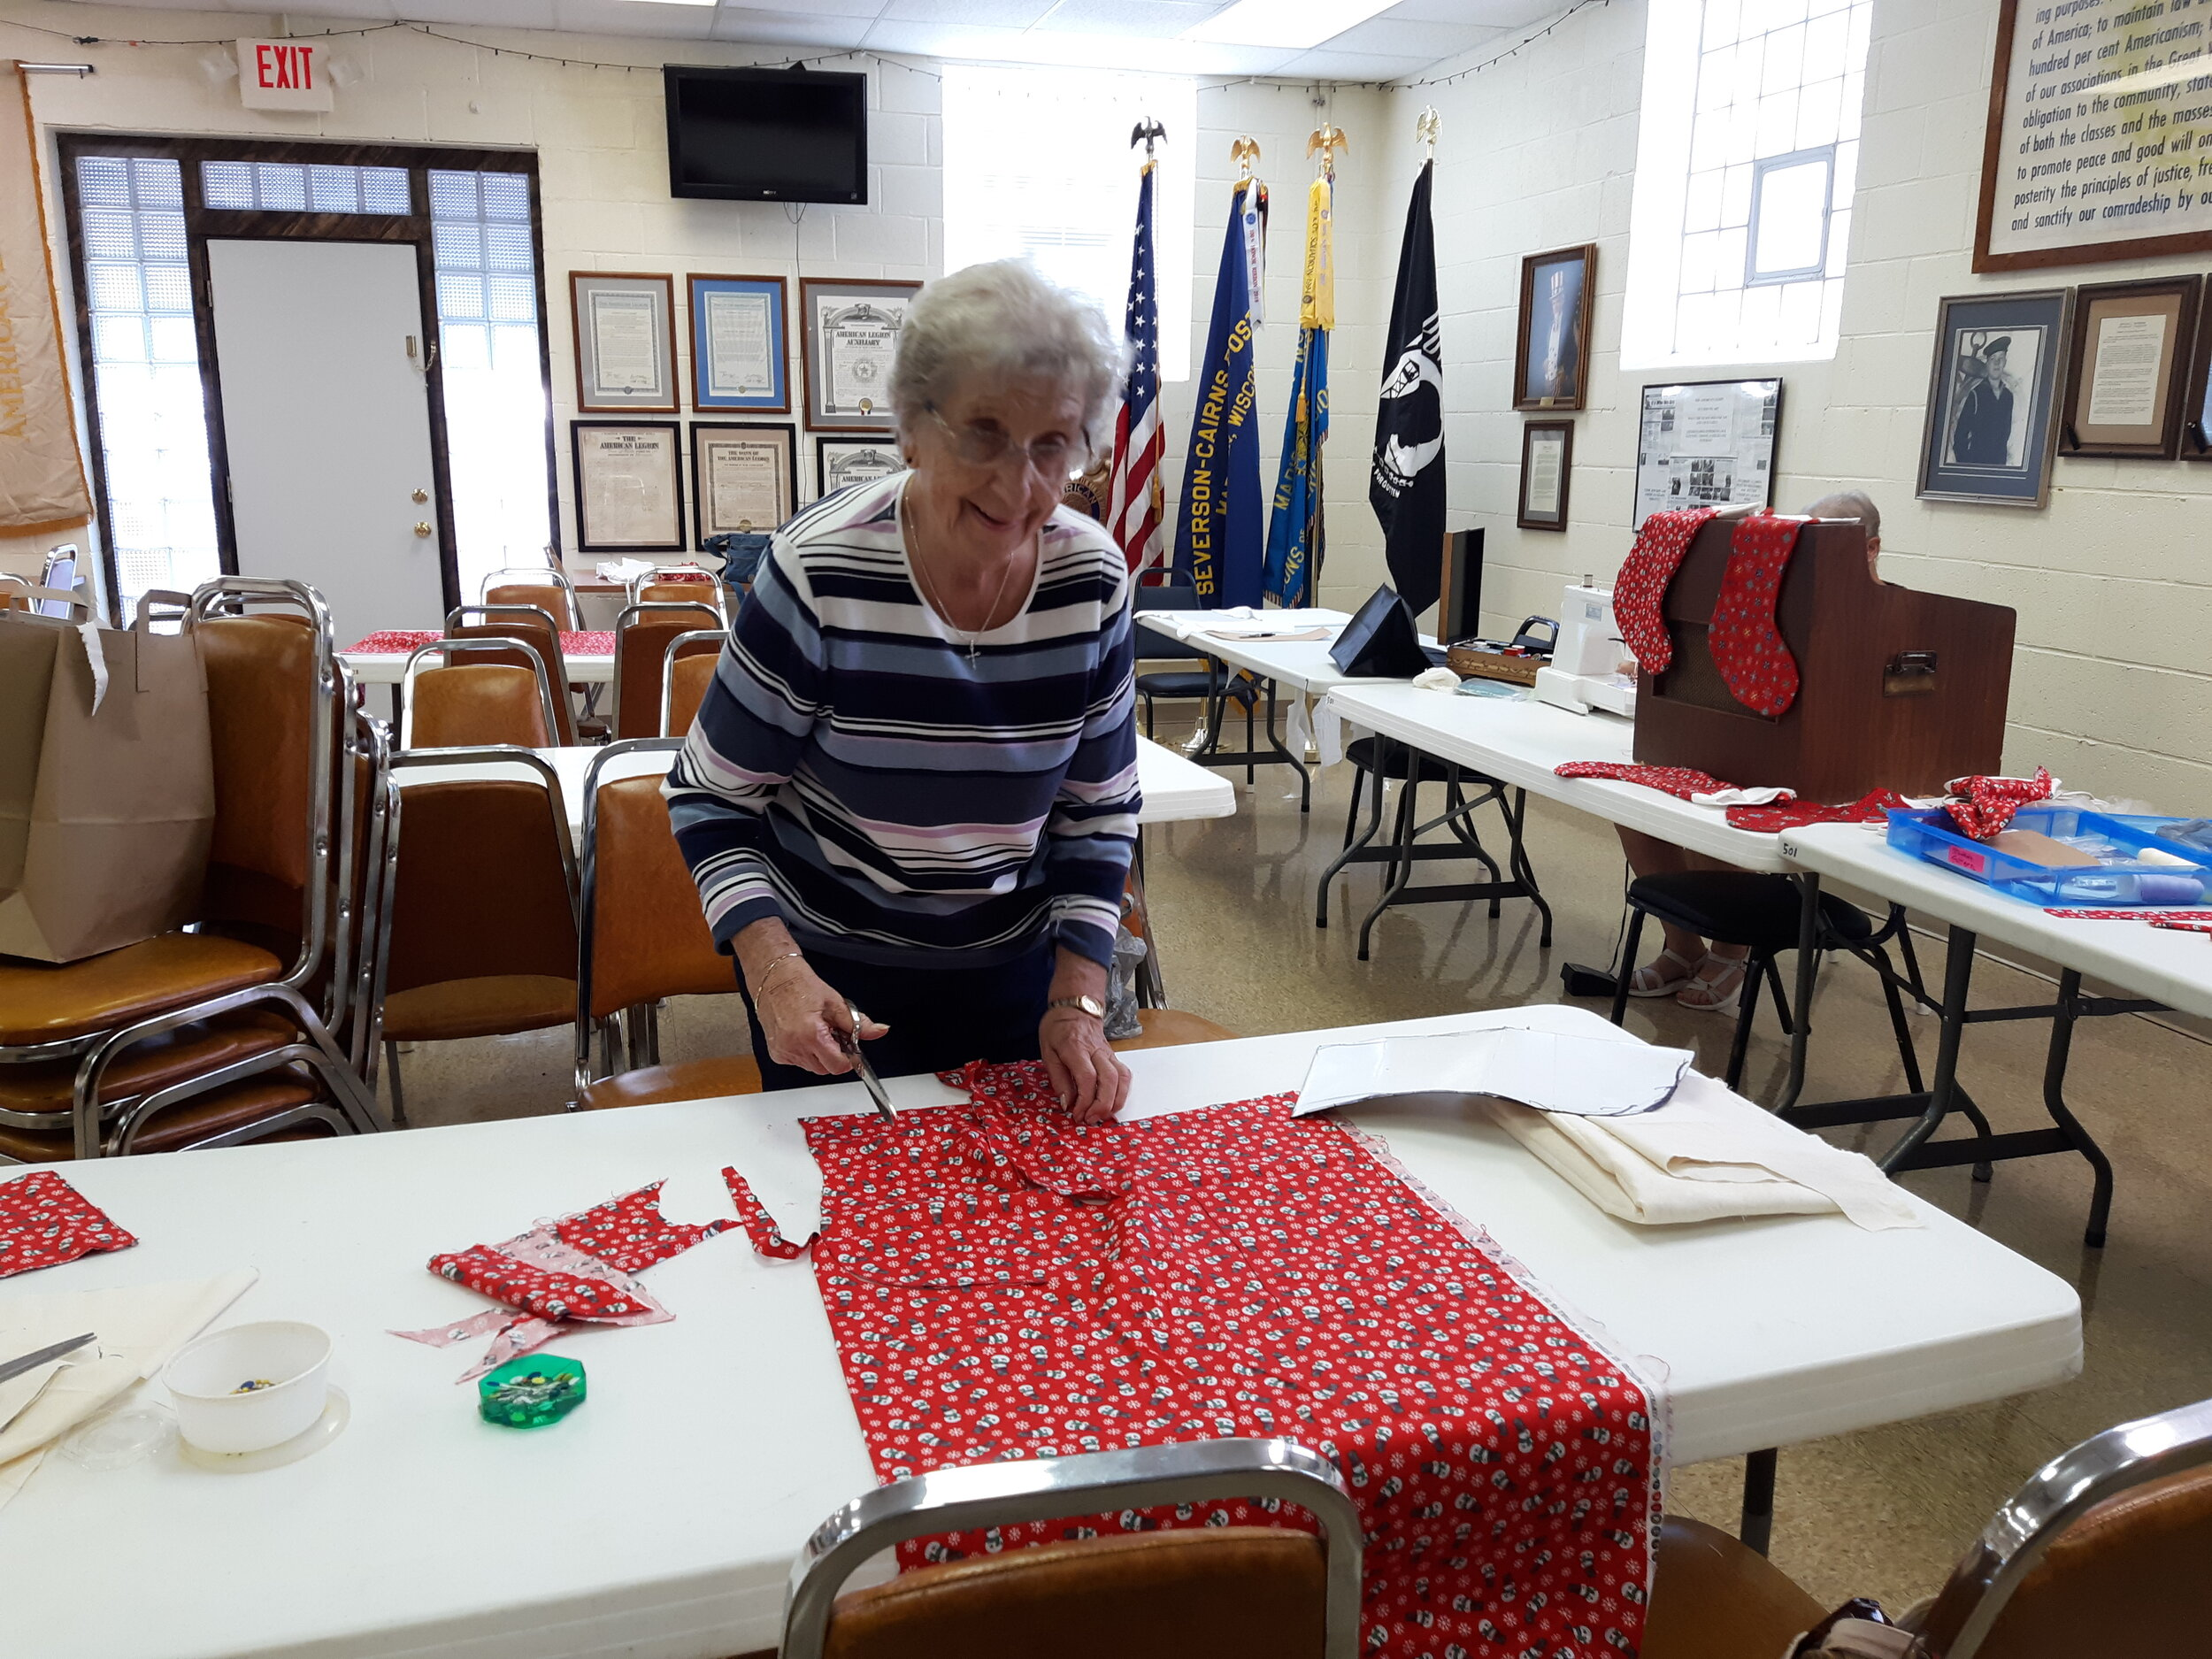 Ellie cutting out stocking patterns for Christmas stockings for VA Hospital on Aug. 29, 2019.